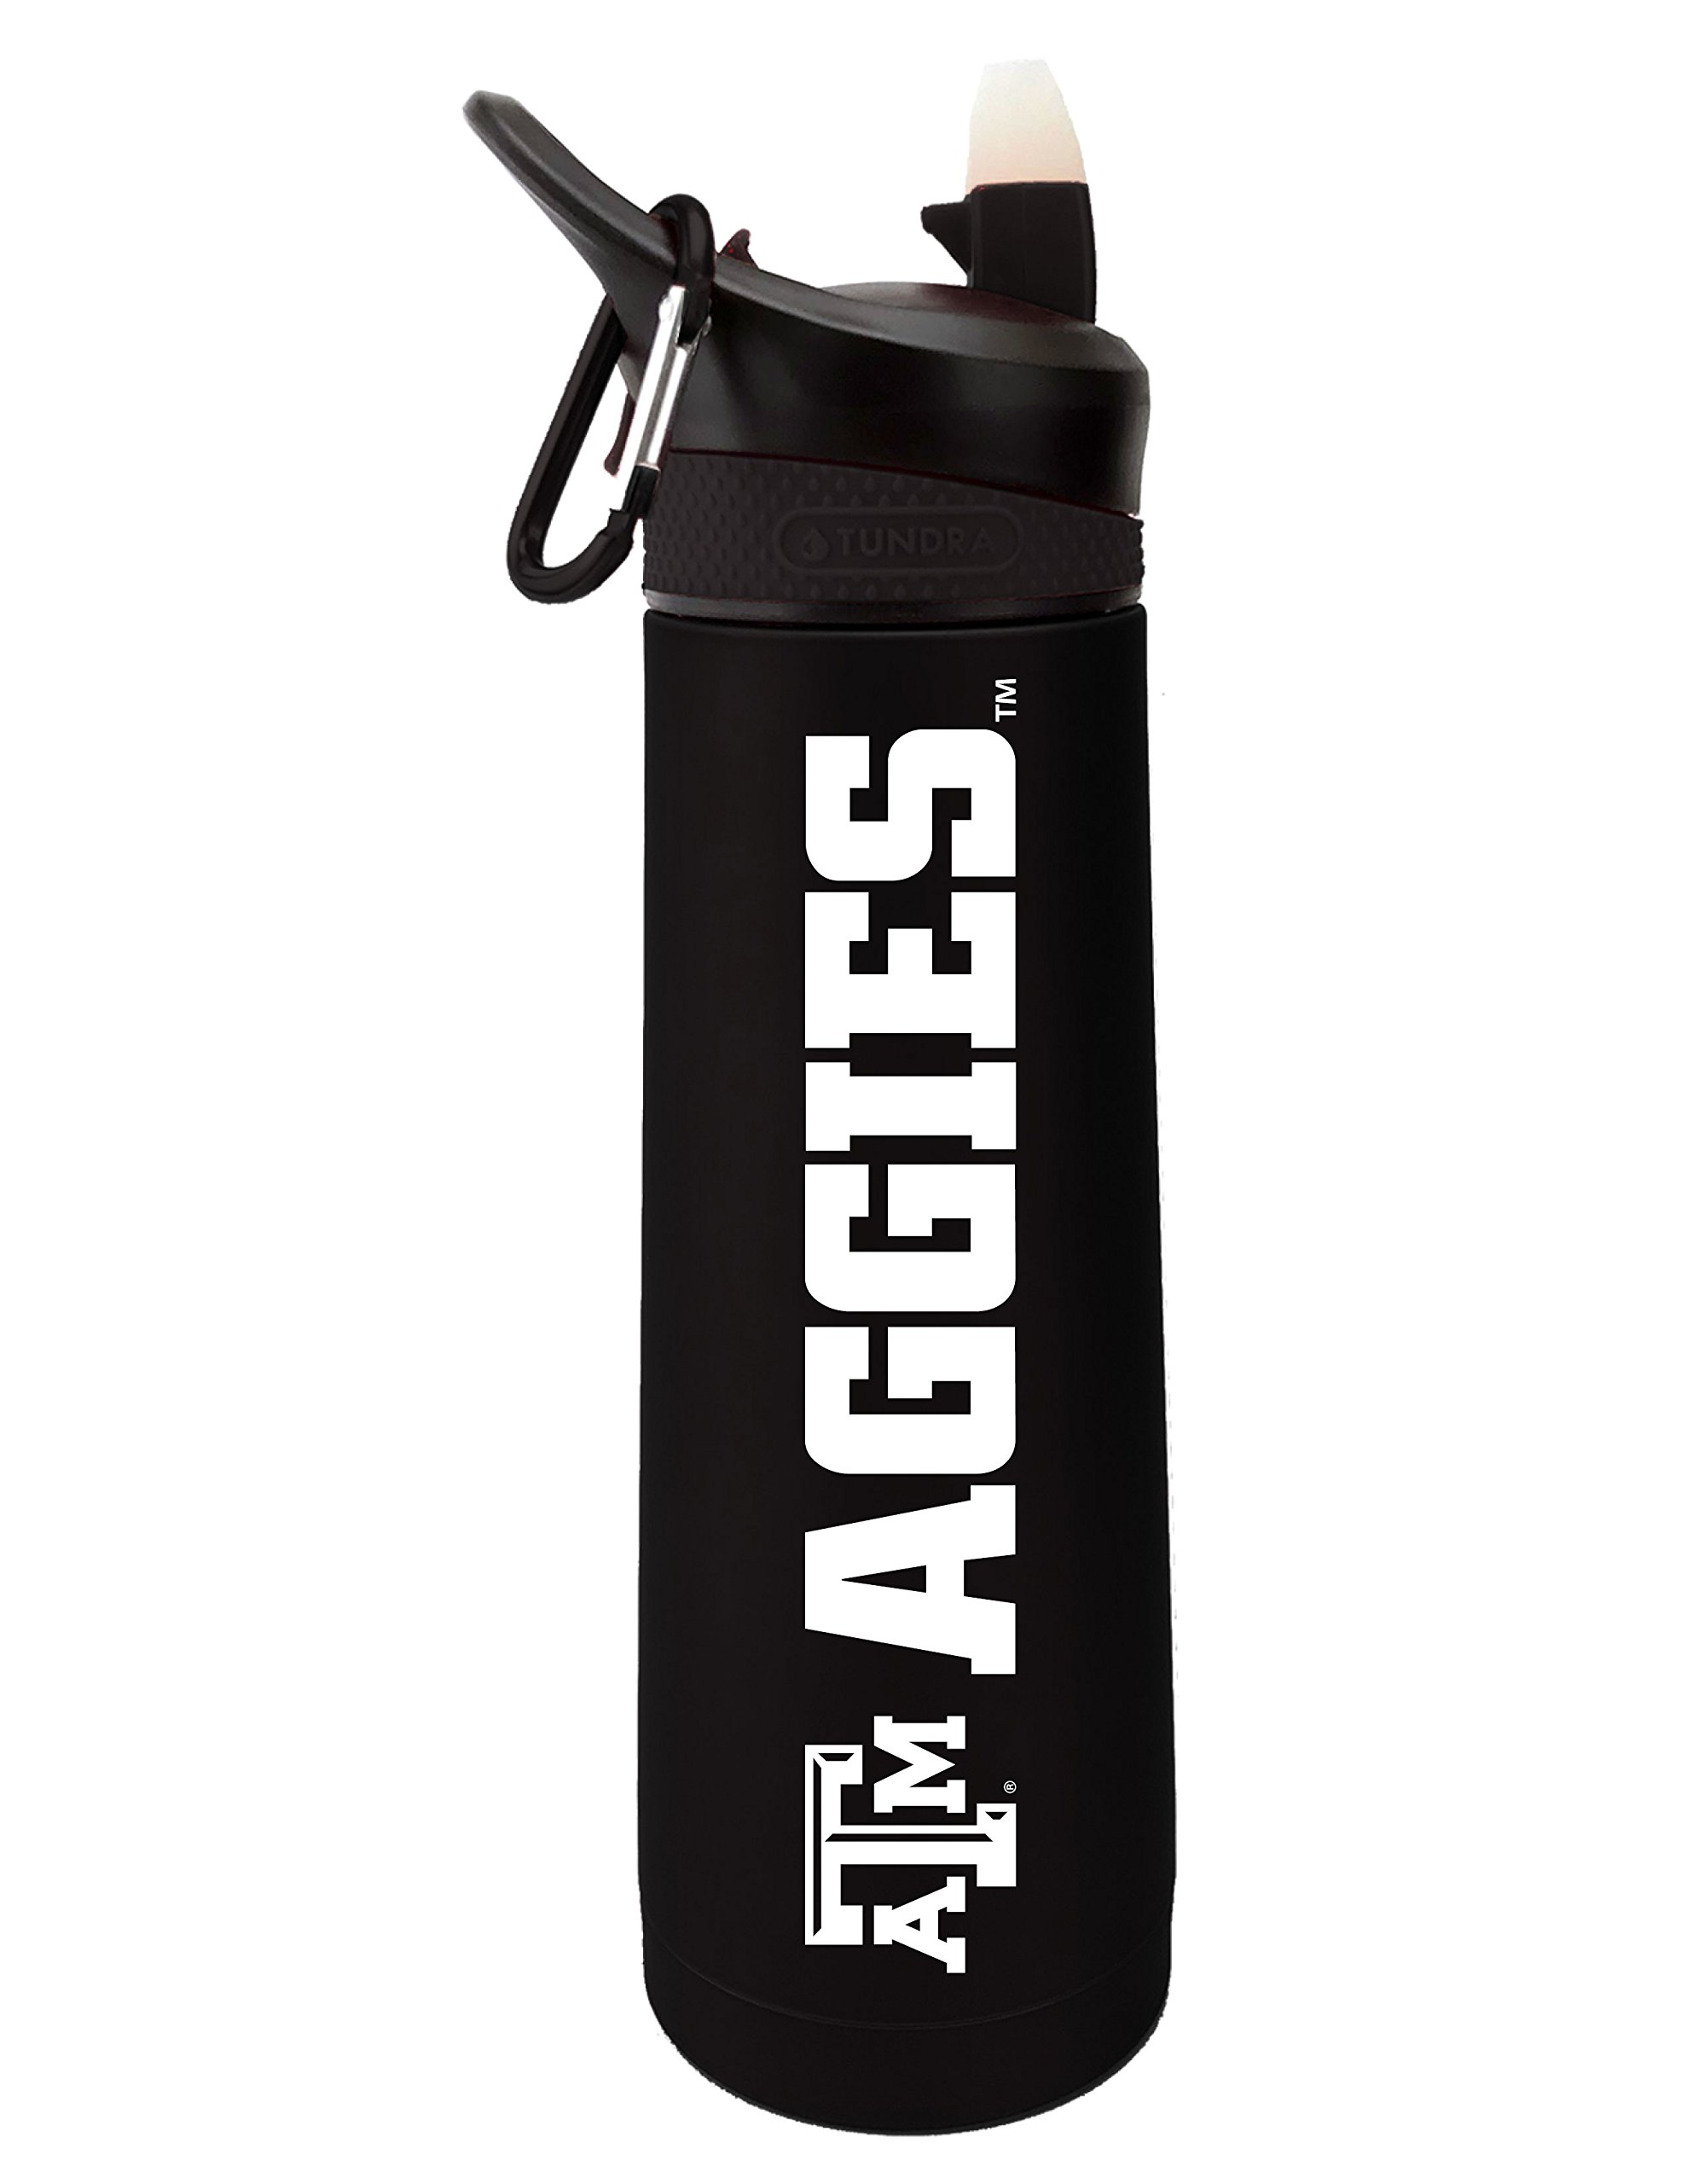 Fanatic Group Texas A&M University Dual Walled Stainless Steel Sports Bottle, Design 2 - Black